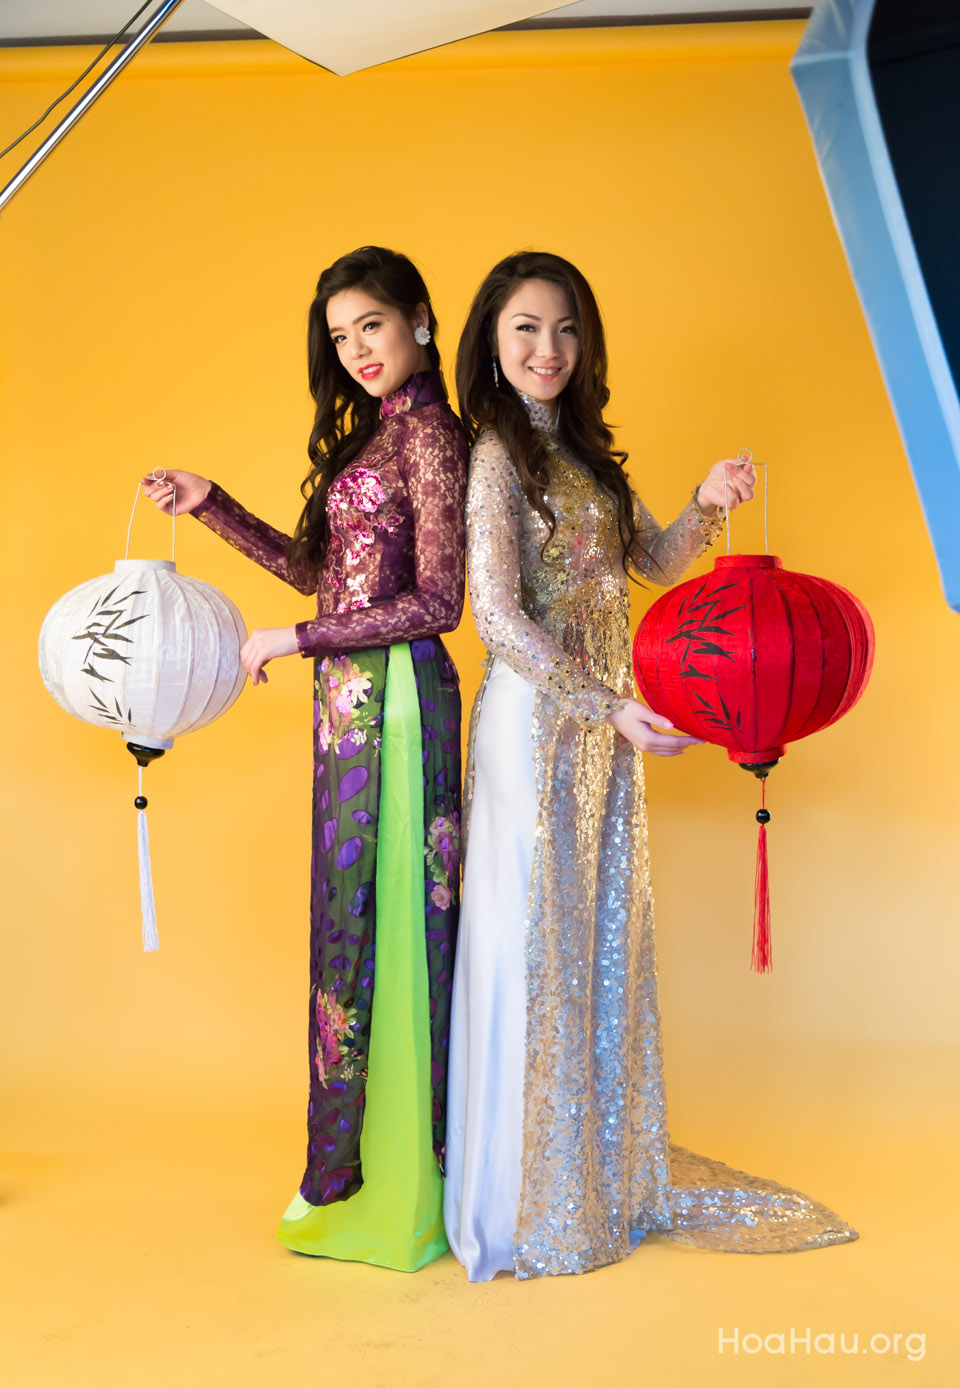 Calendar 2014 Photoshoot - Miss Vietnam of Northern California 2014 - Image 135